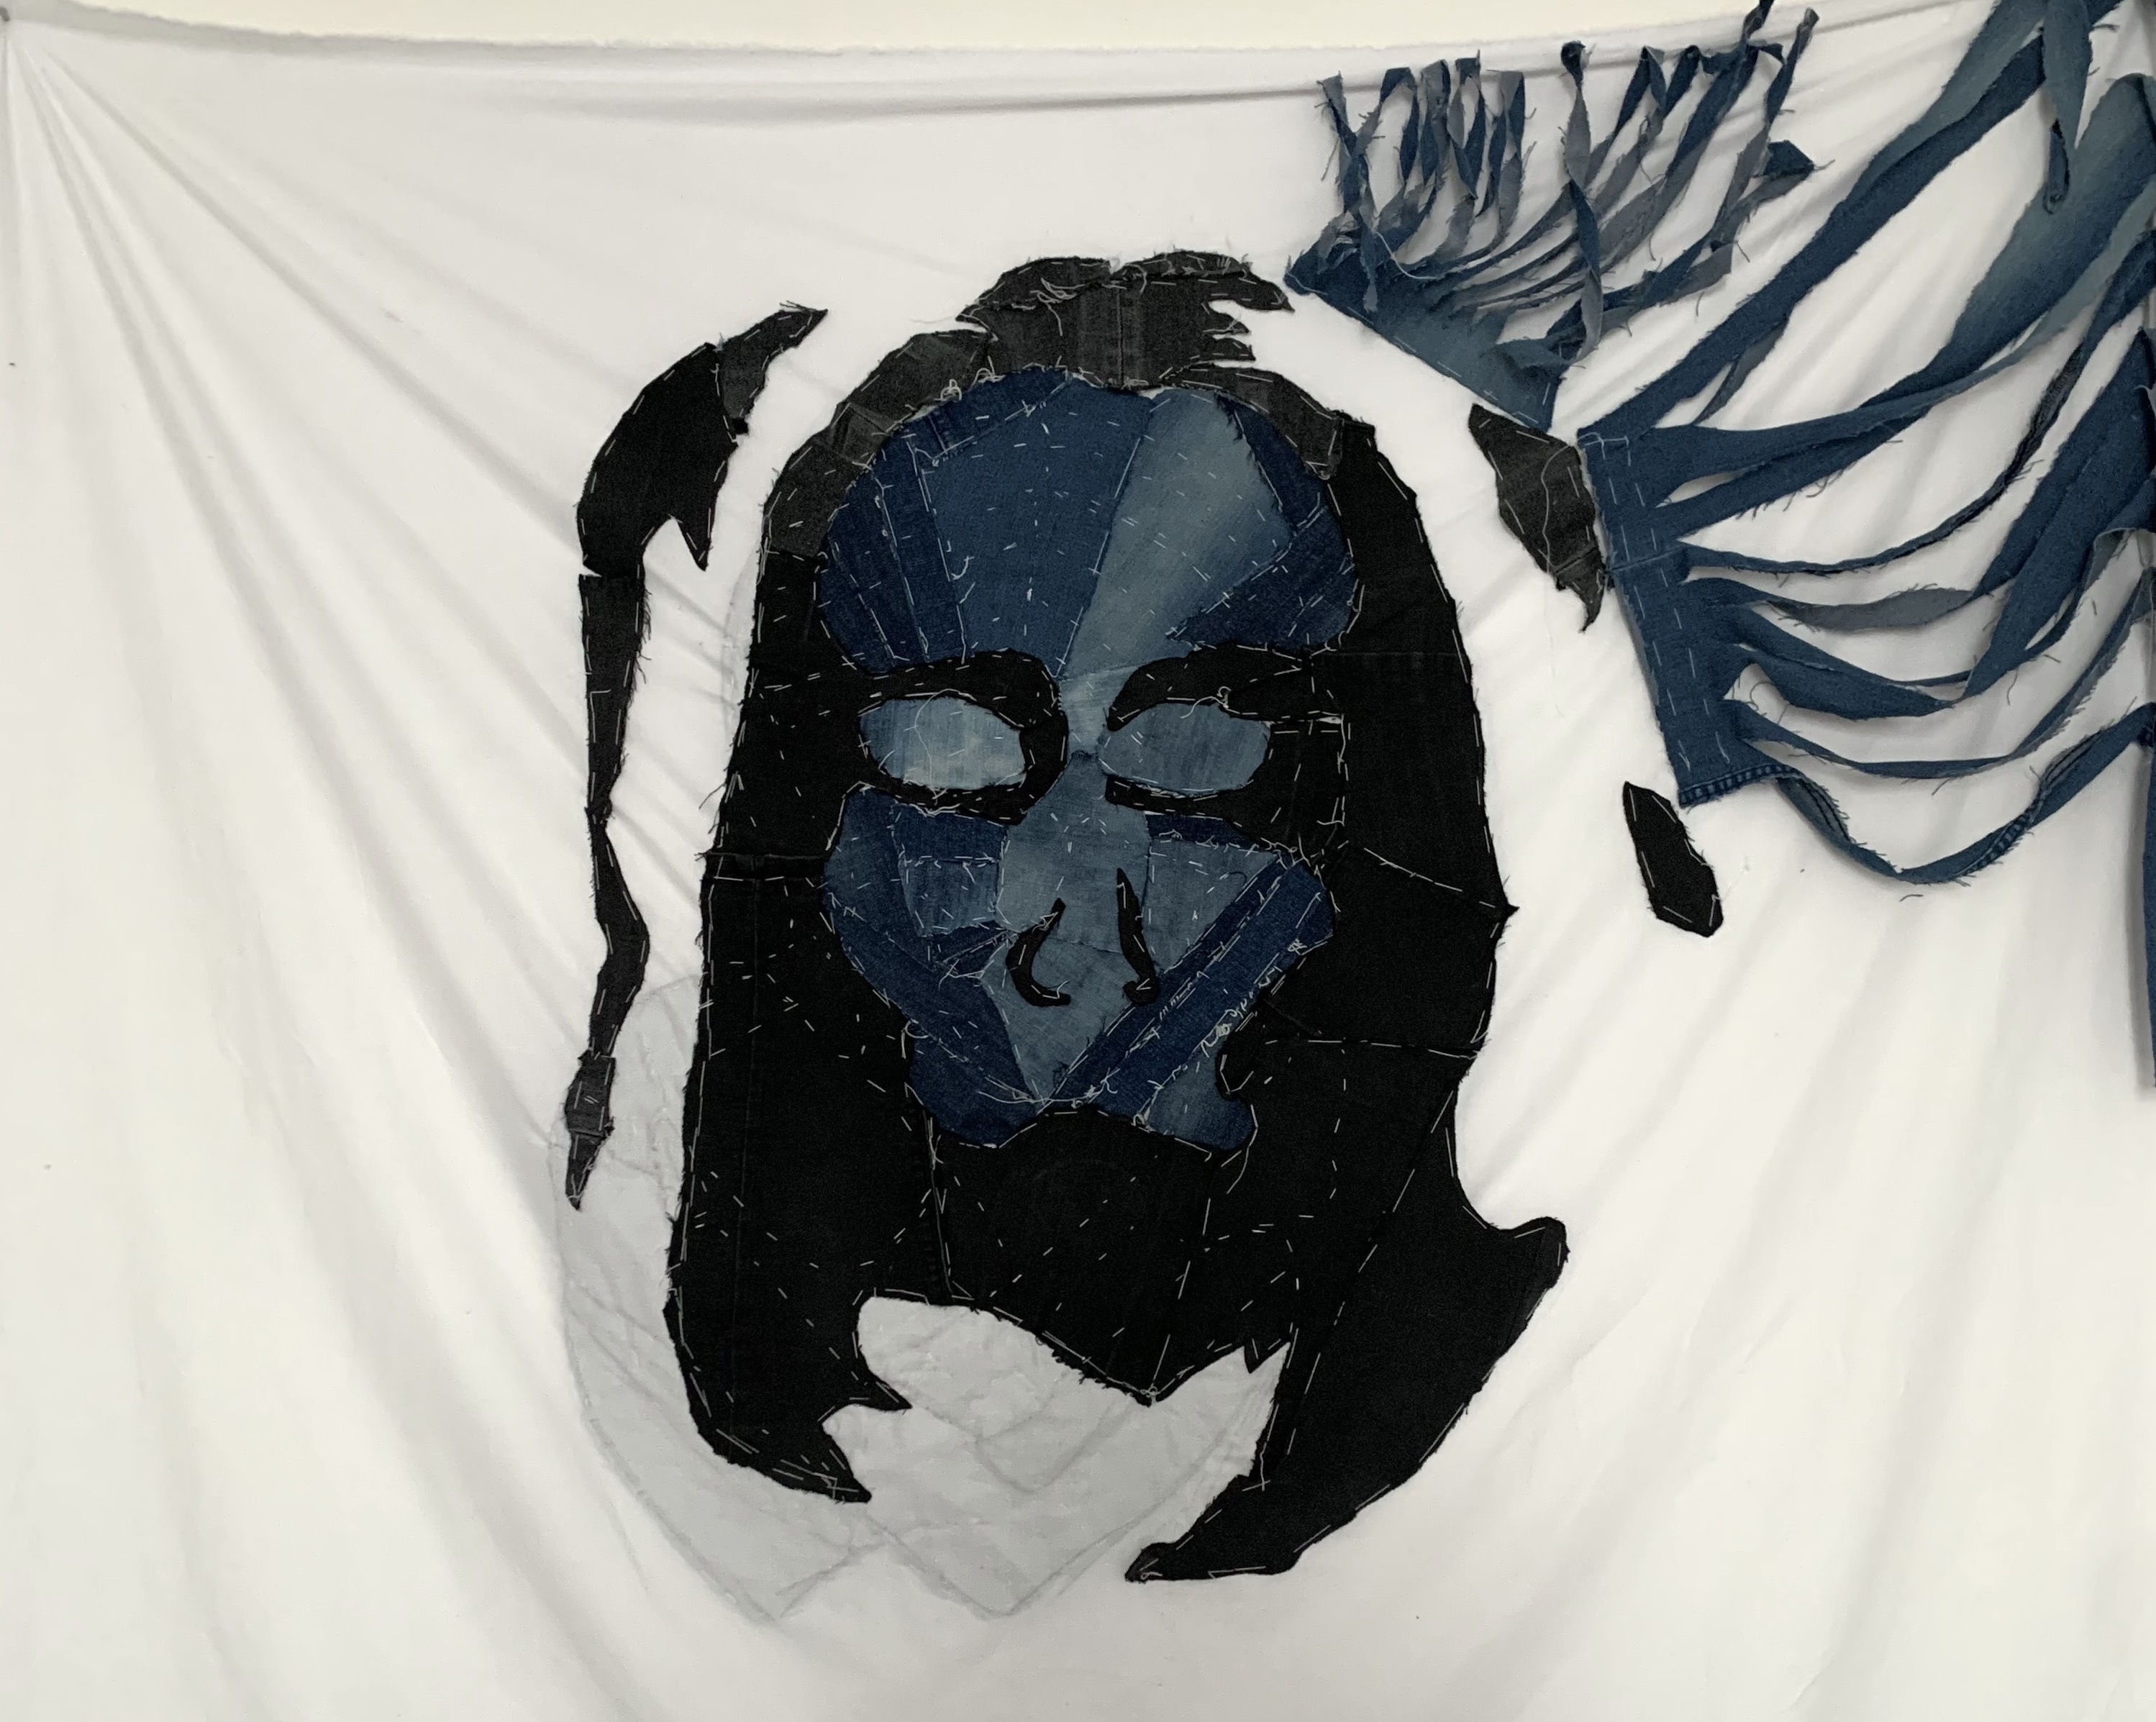 Slovak visual artist based in Prague. In my works I examine the potential of old materials and fabrics, mainly denim. I deconstruct and give new soul to what would otherwise be forgotten. I draw inspiration from inner spiritual experience, mundane forms and figures, and from personal reflections. I also publish my art essays here: https://independent.academia.edu/DorotaCicatkova